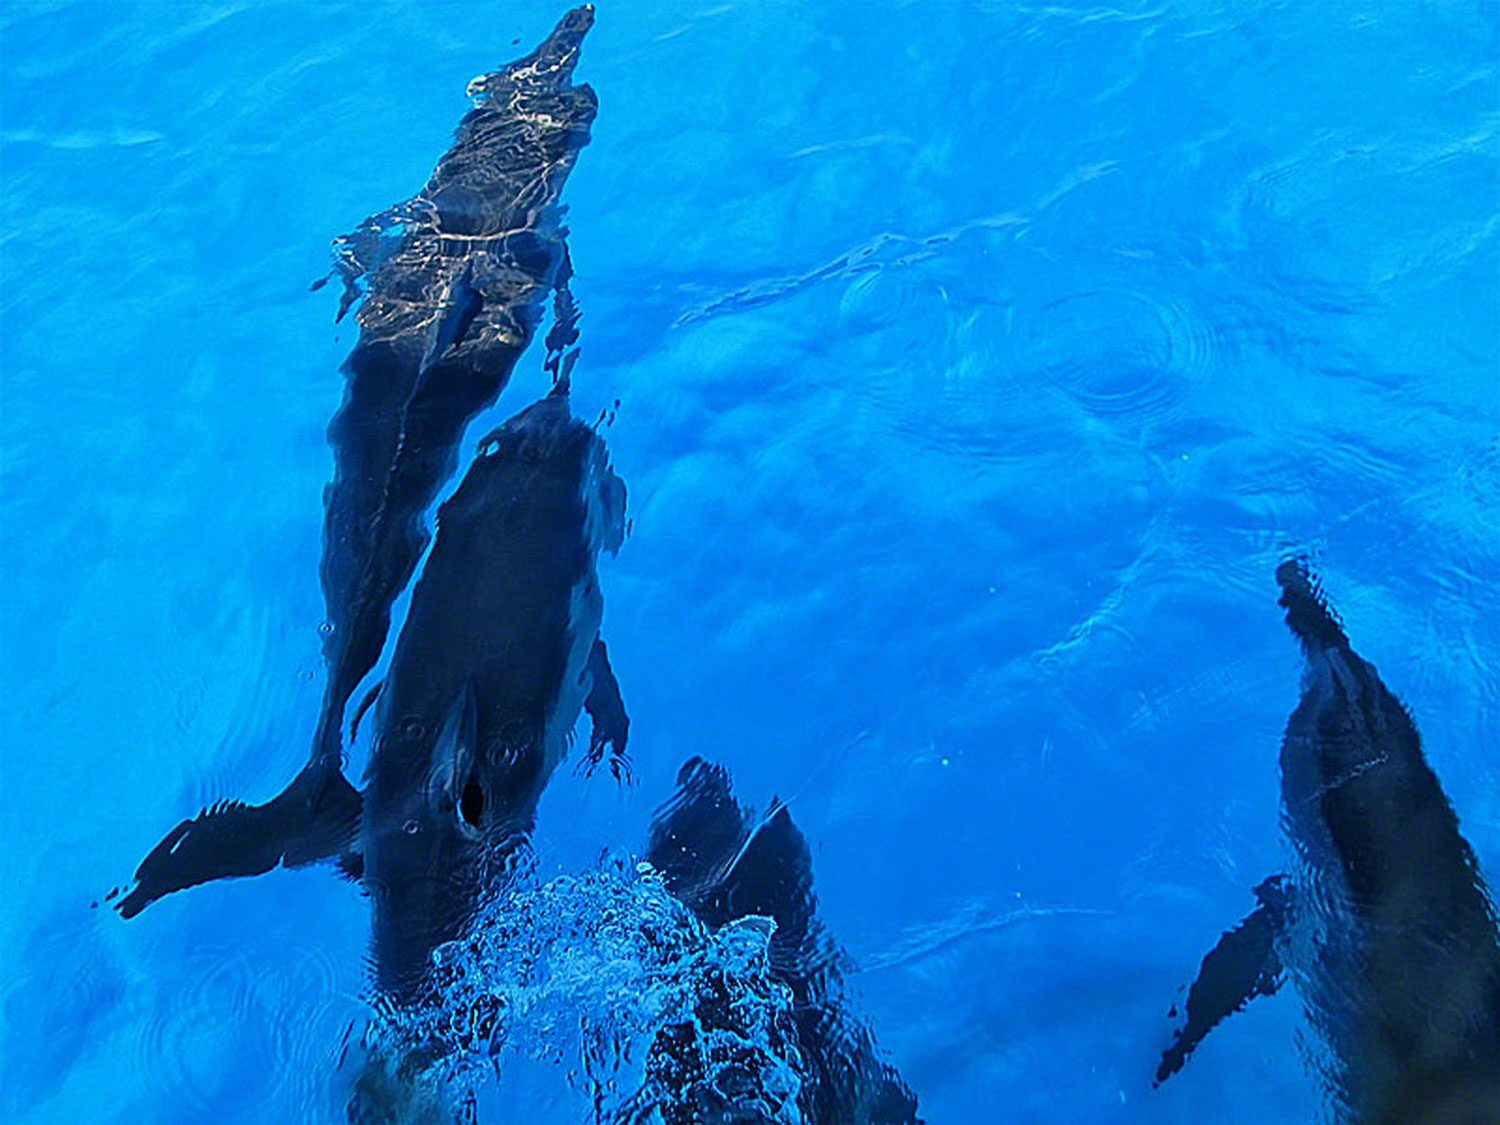 The Dolphins led the way to there Atlantic Ocean playground.